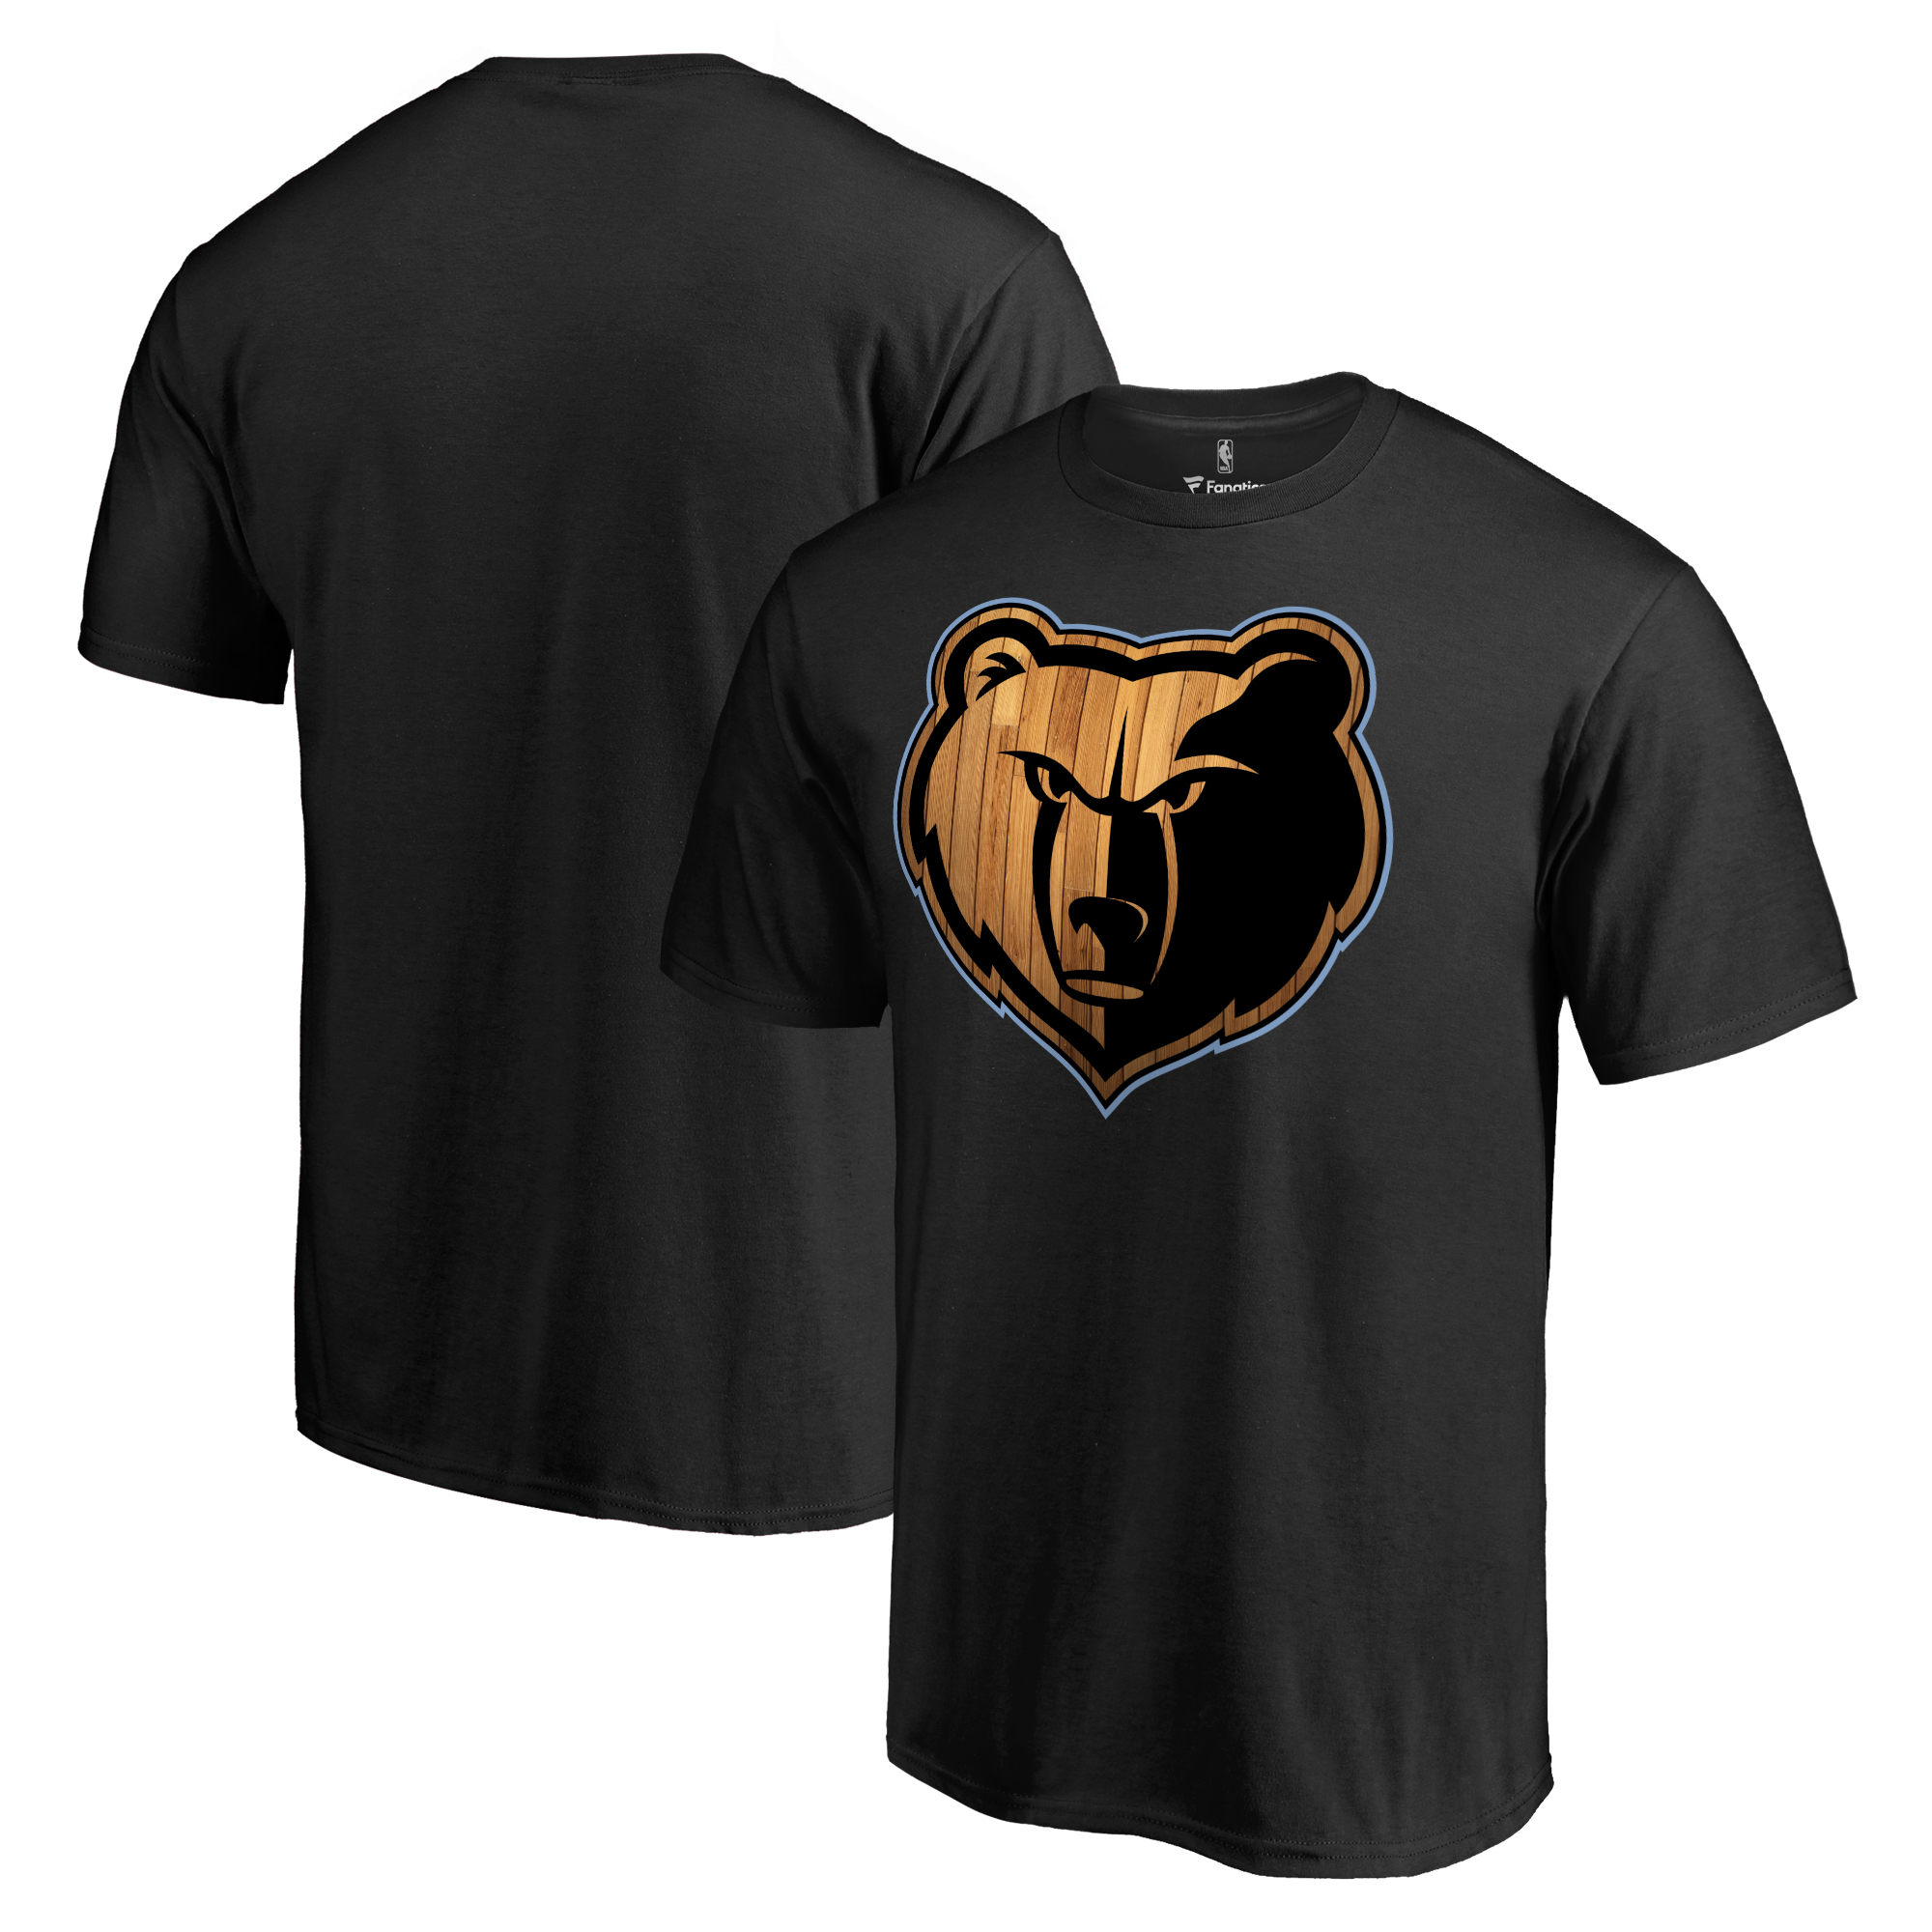 Memphis Grizzlies Hardwood T-Shirt - Black